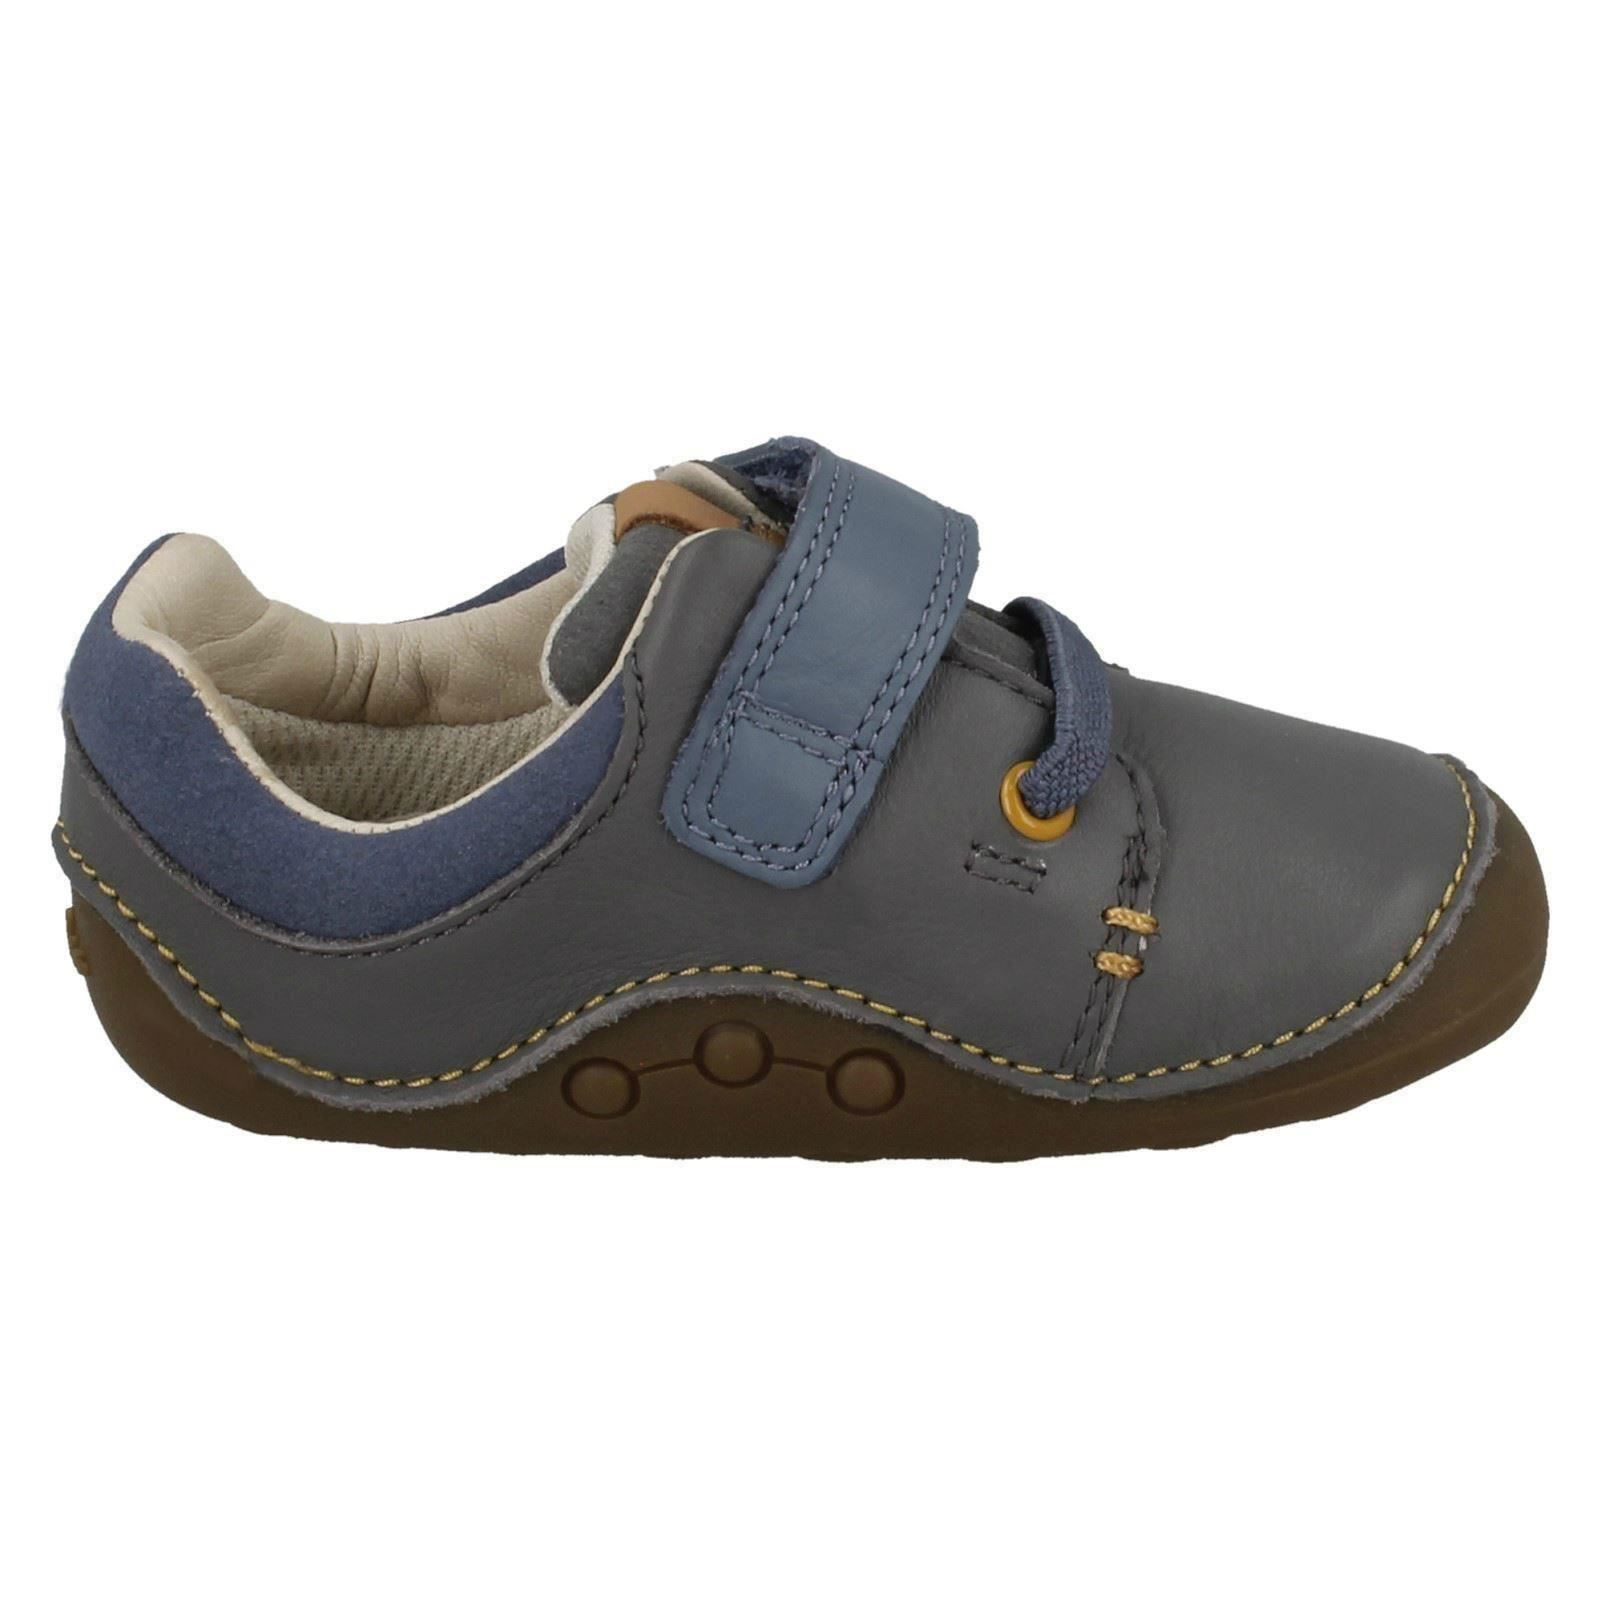 e38d60c2e17f Boys Clarks Leather First Shoes Tiny Sid UK 3.5 Infant Grey G for ...